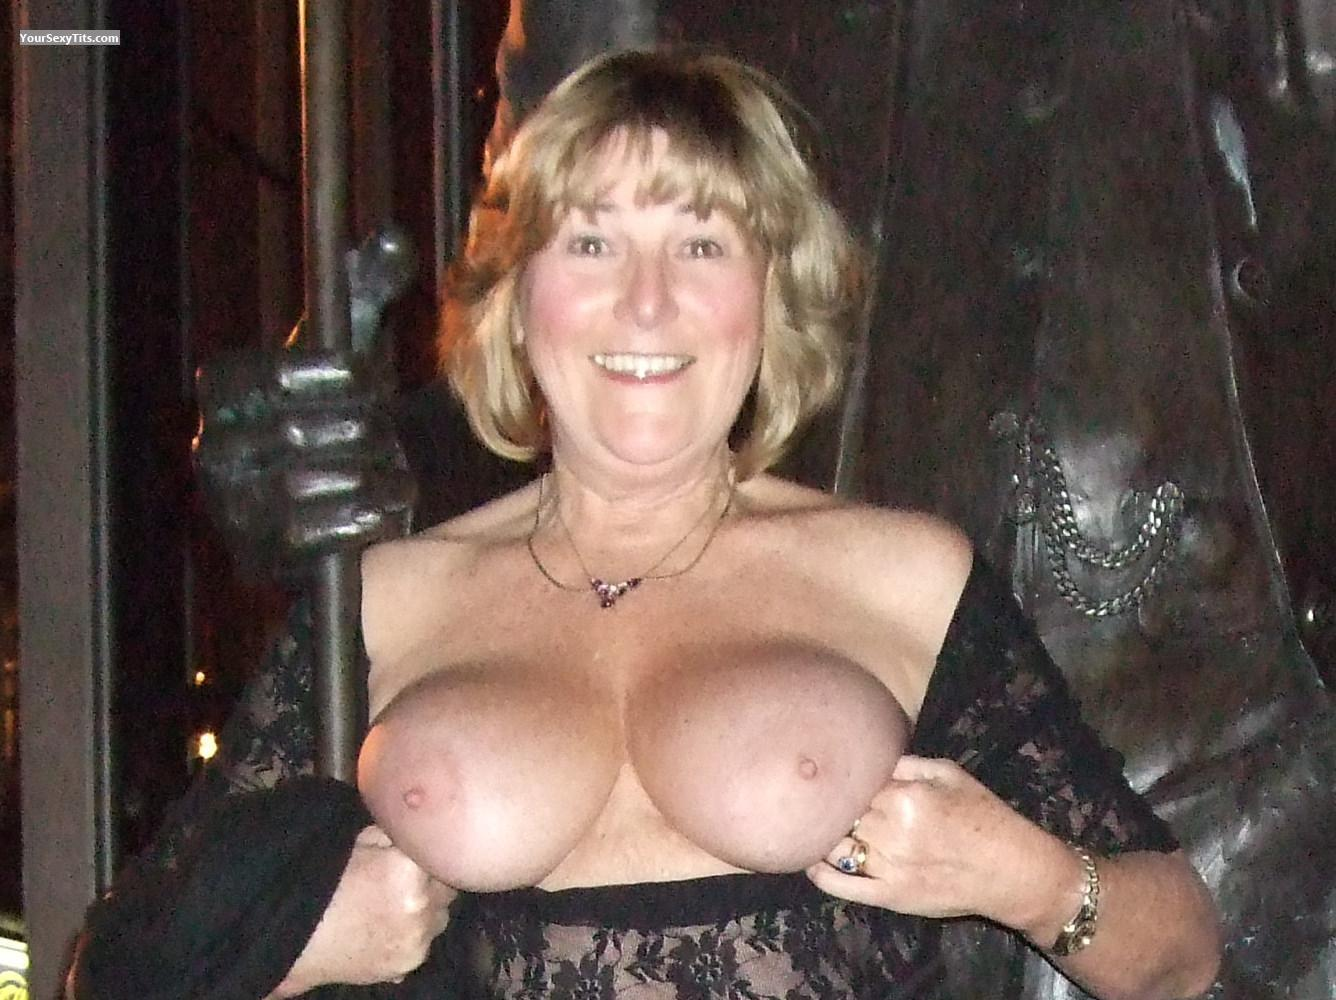 Medium Tits Topless Marilyn